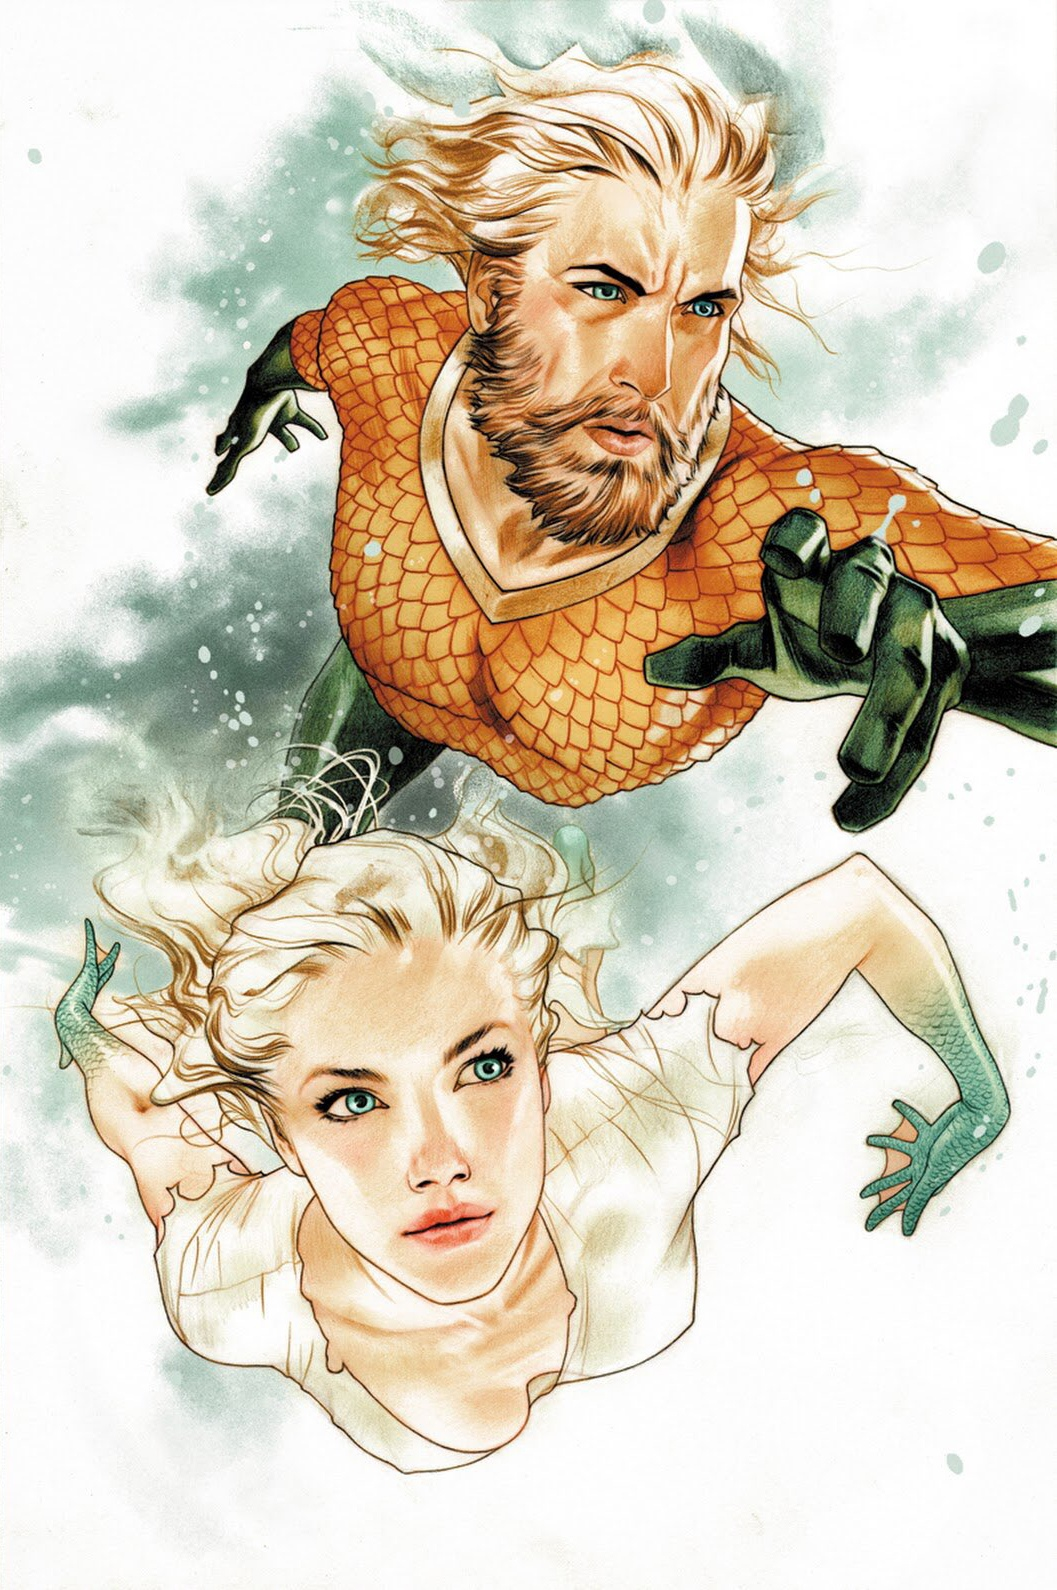 Aquaman Vol 8 37 Textless Variant.jpg